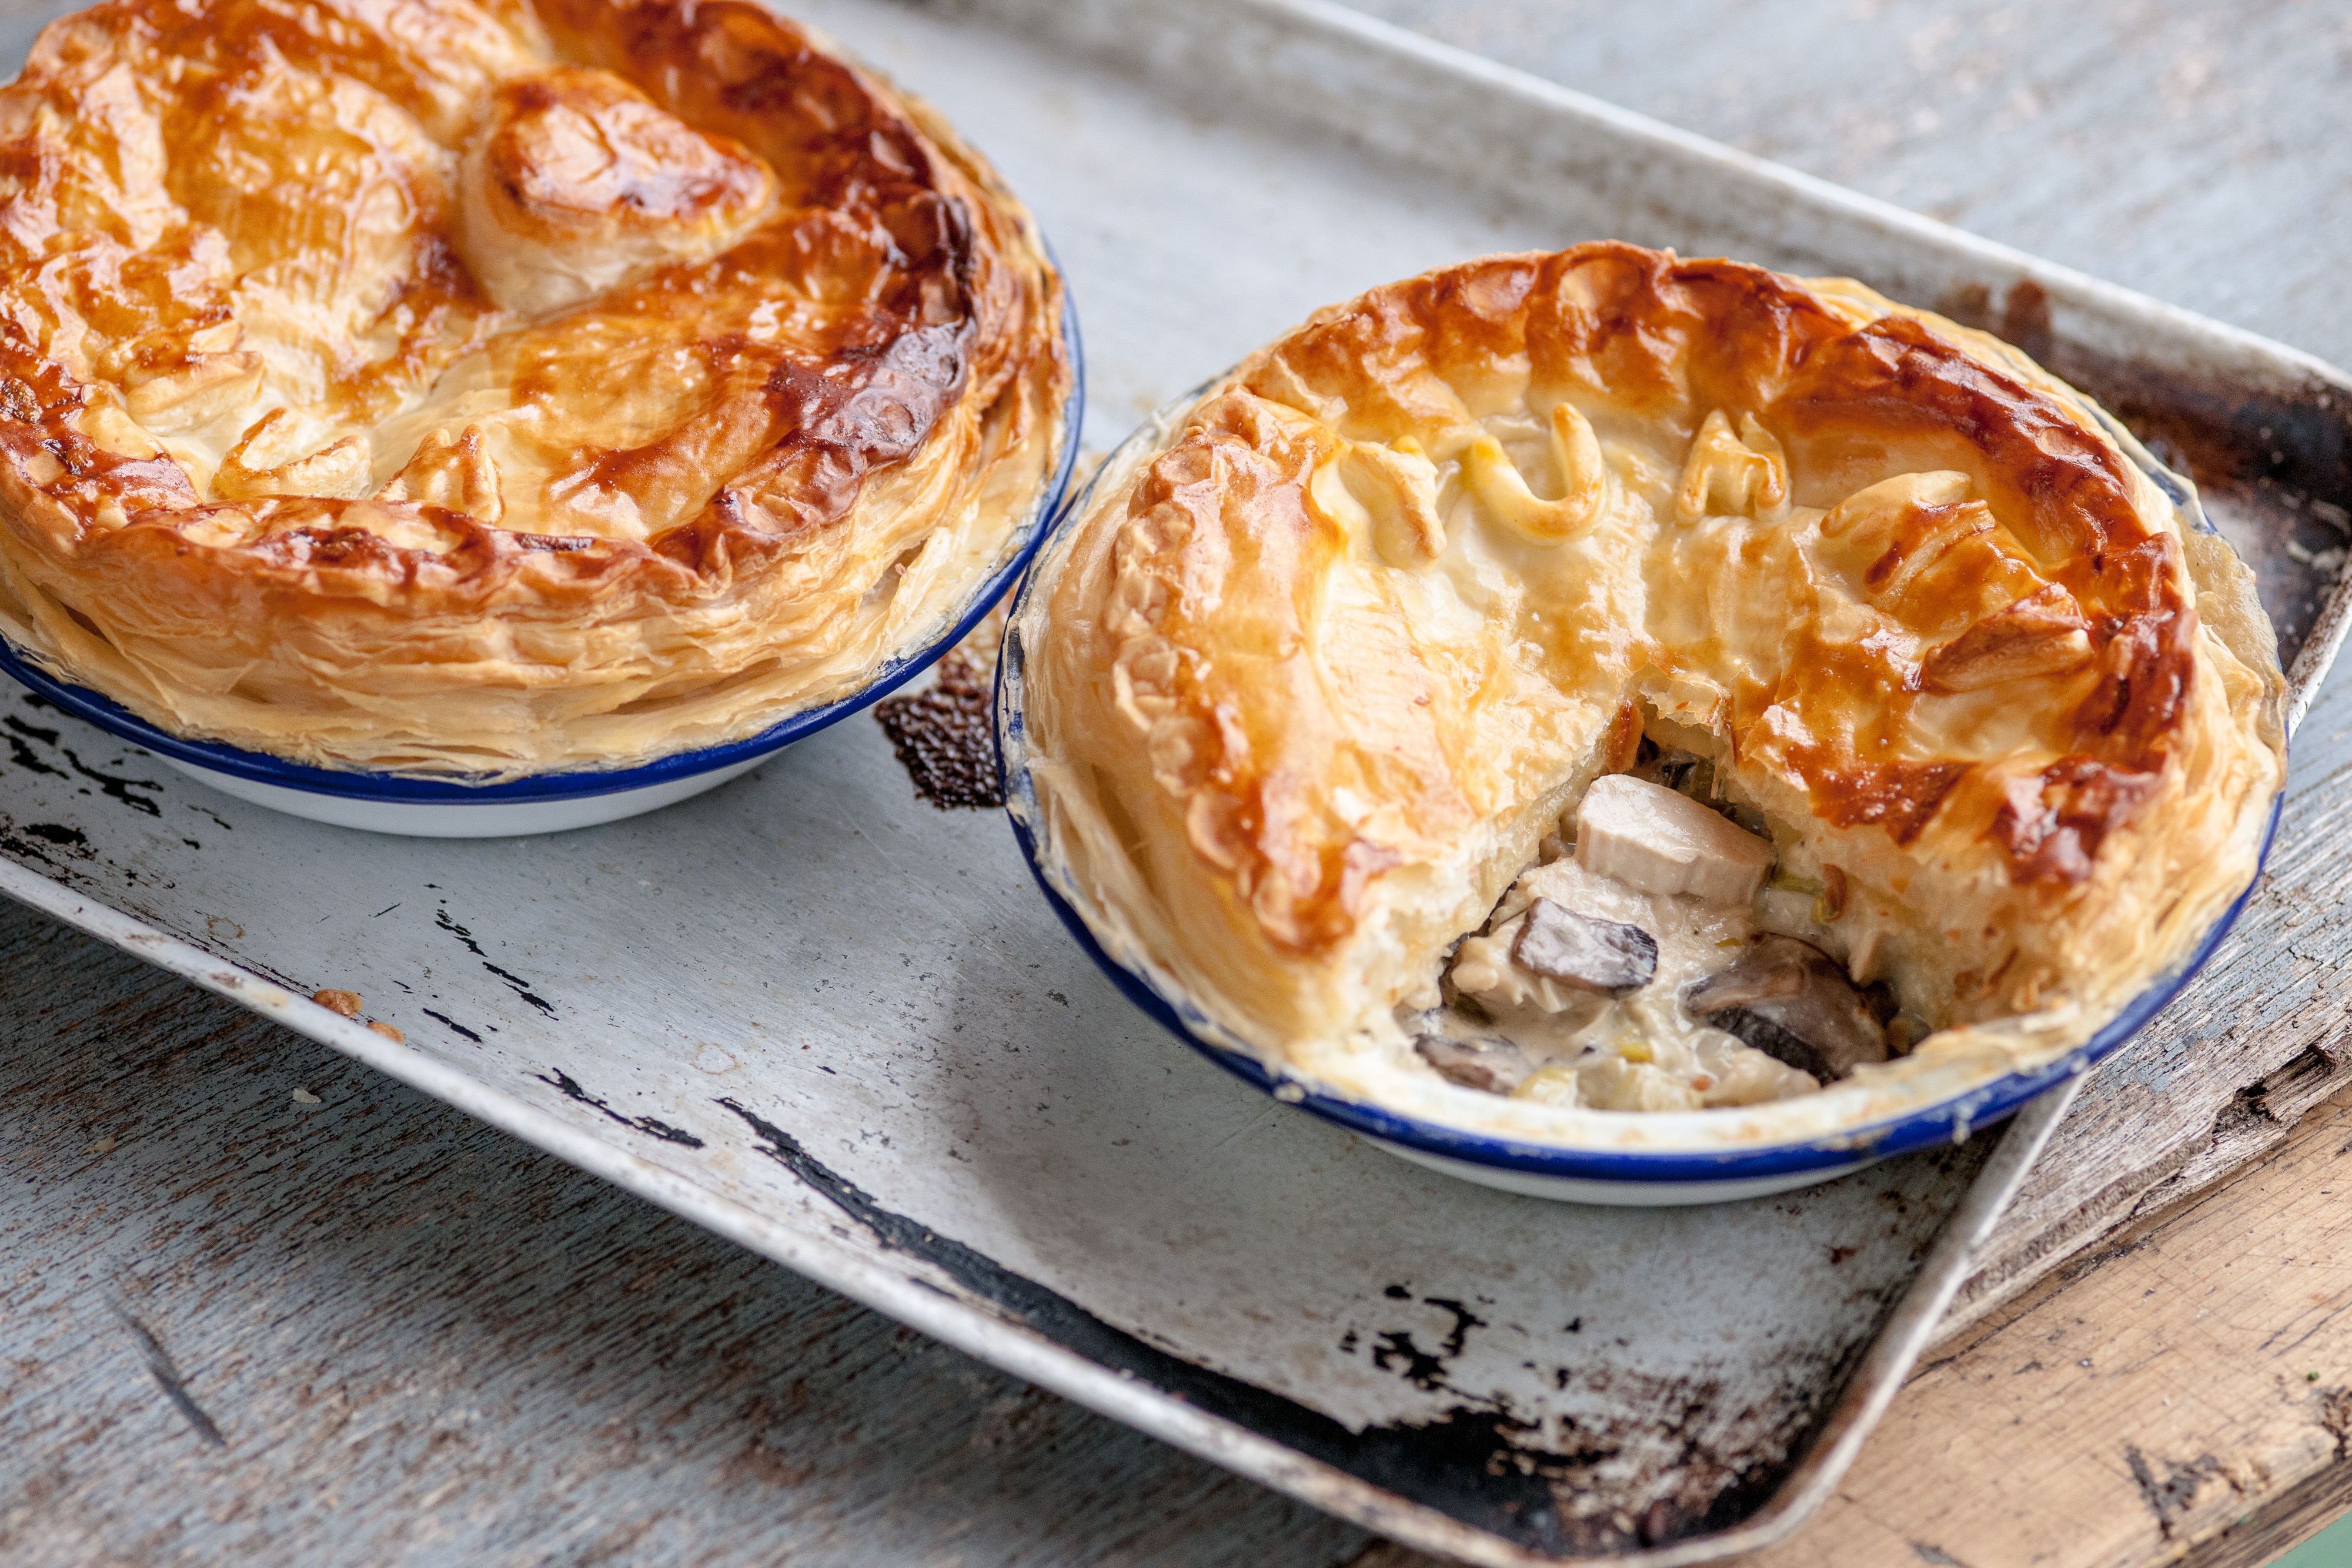 How to cook a pie with mushrooms and potatoes